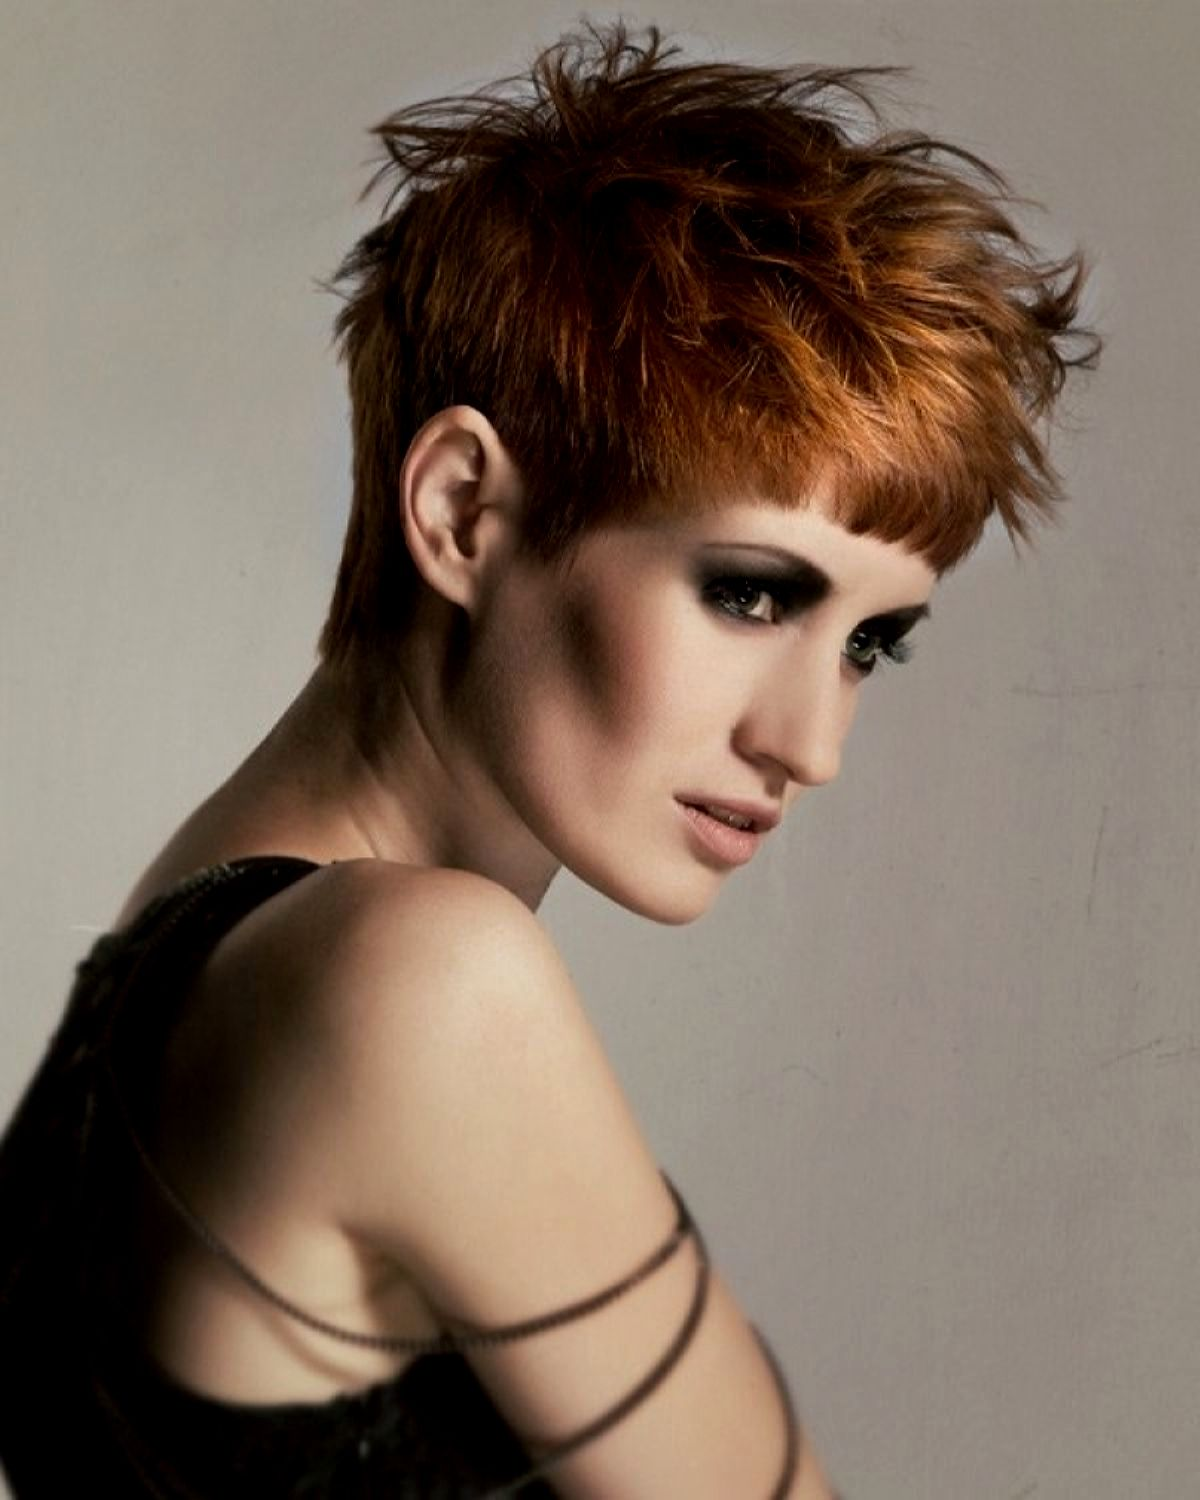 wonderfully stunning braids short-haired model-awesome braided hair shorthair concepts